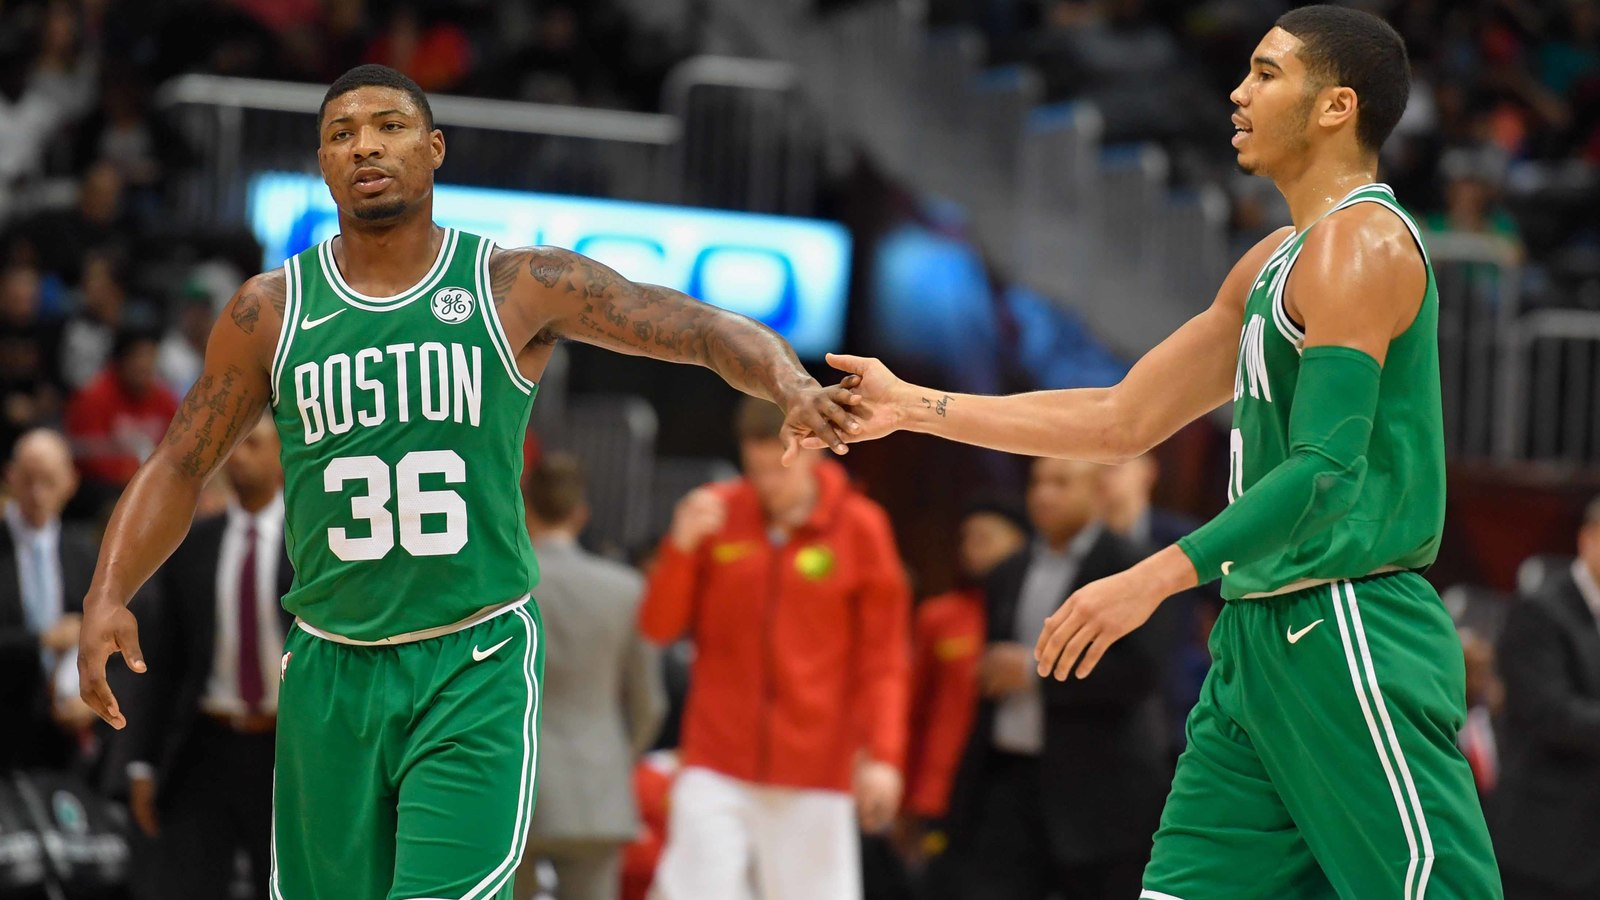 BasketballNcaa - Boston Celtics